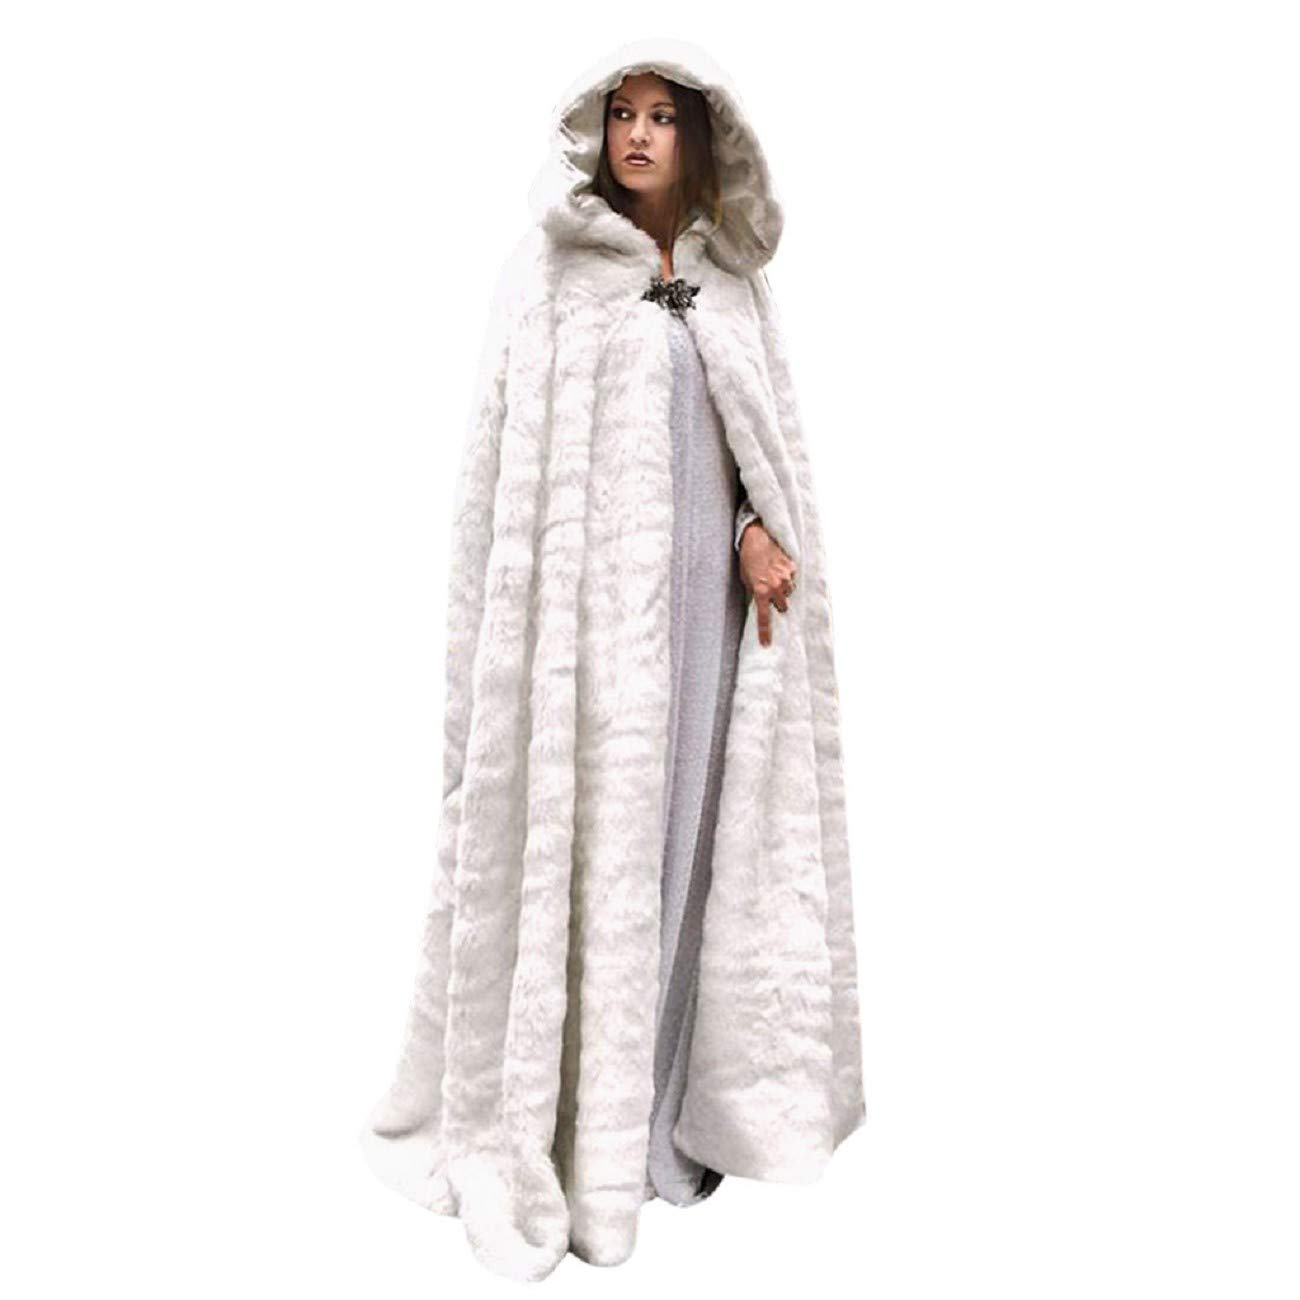 Reokoou Flannel Long Cape for Women Winter Plush Warm Shawl Solid Colour Hooded Coat Sleeveless Blouse Soft Long Tops White by Reokoou